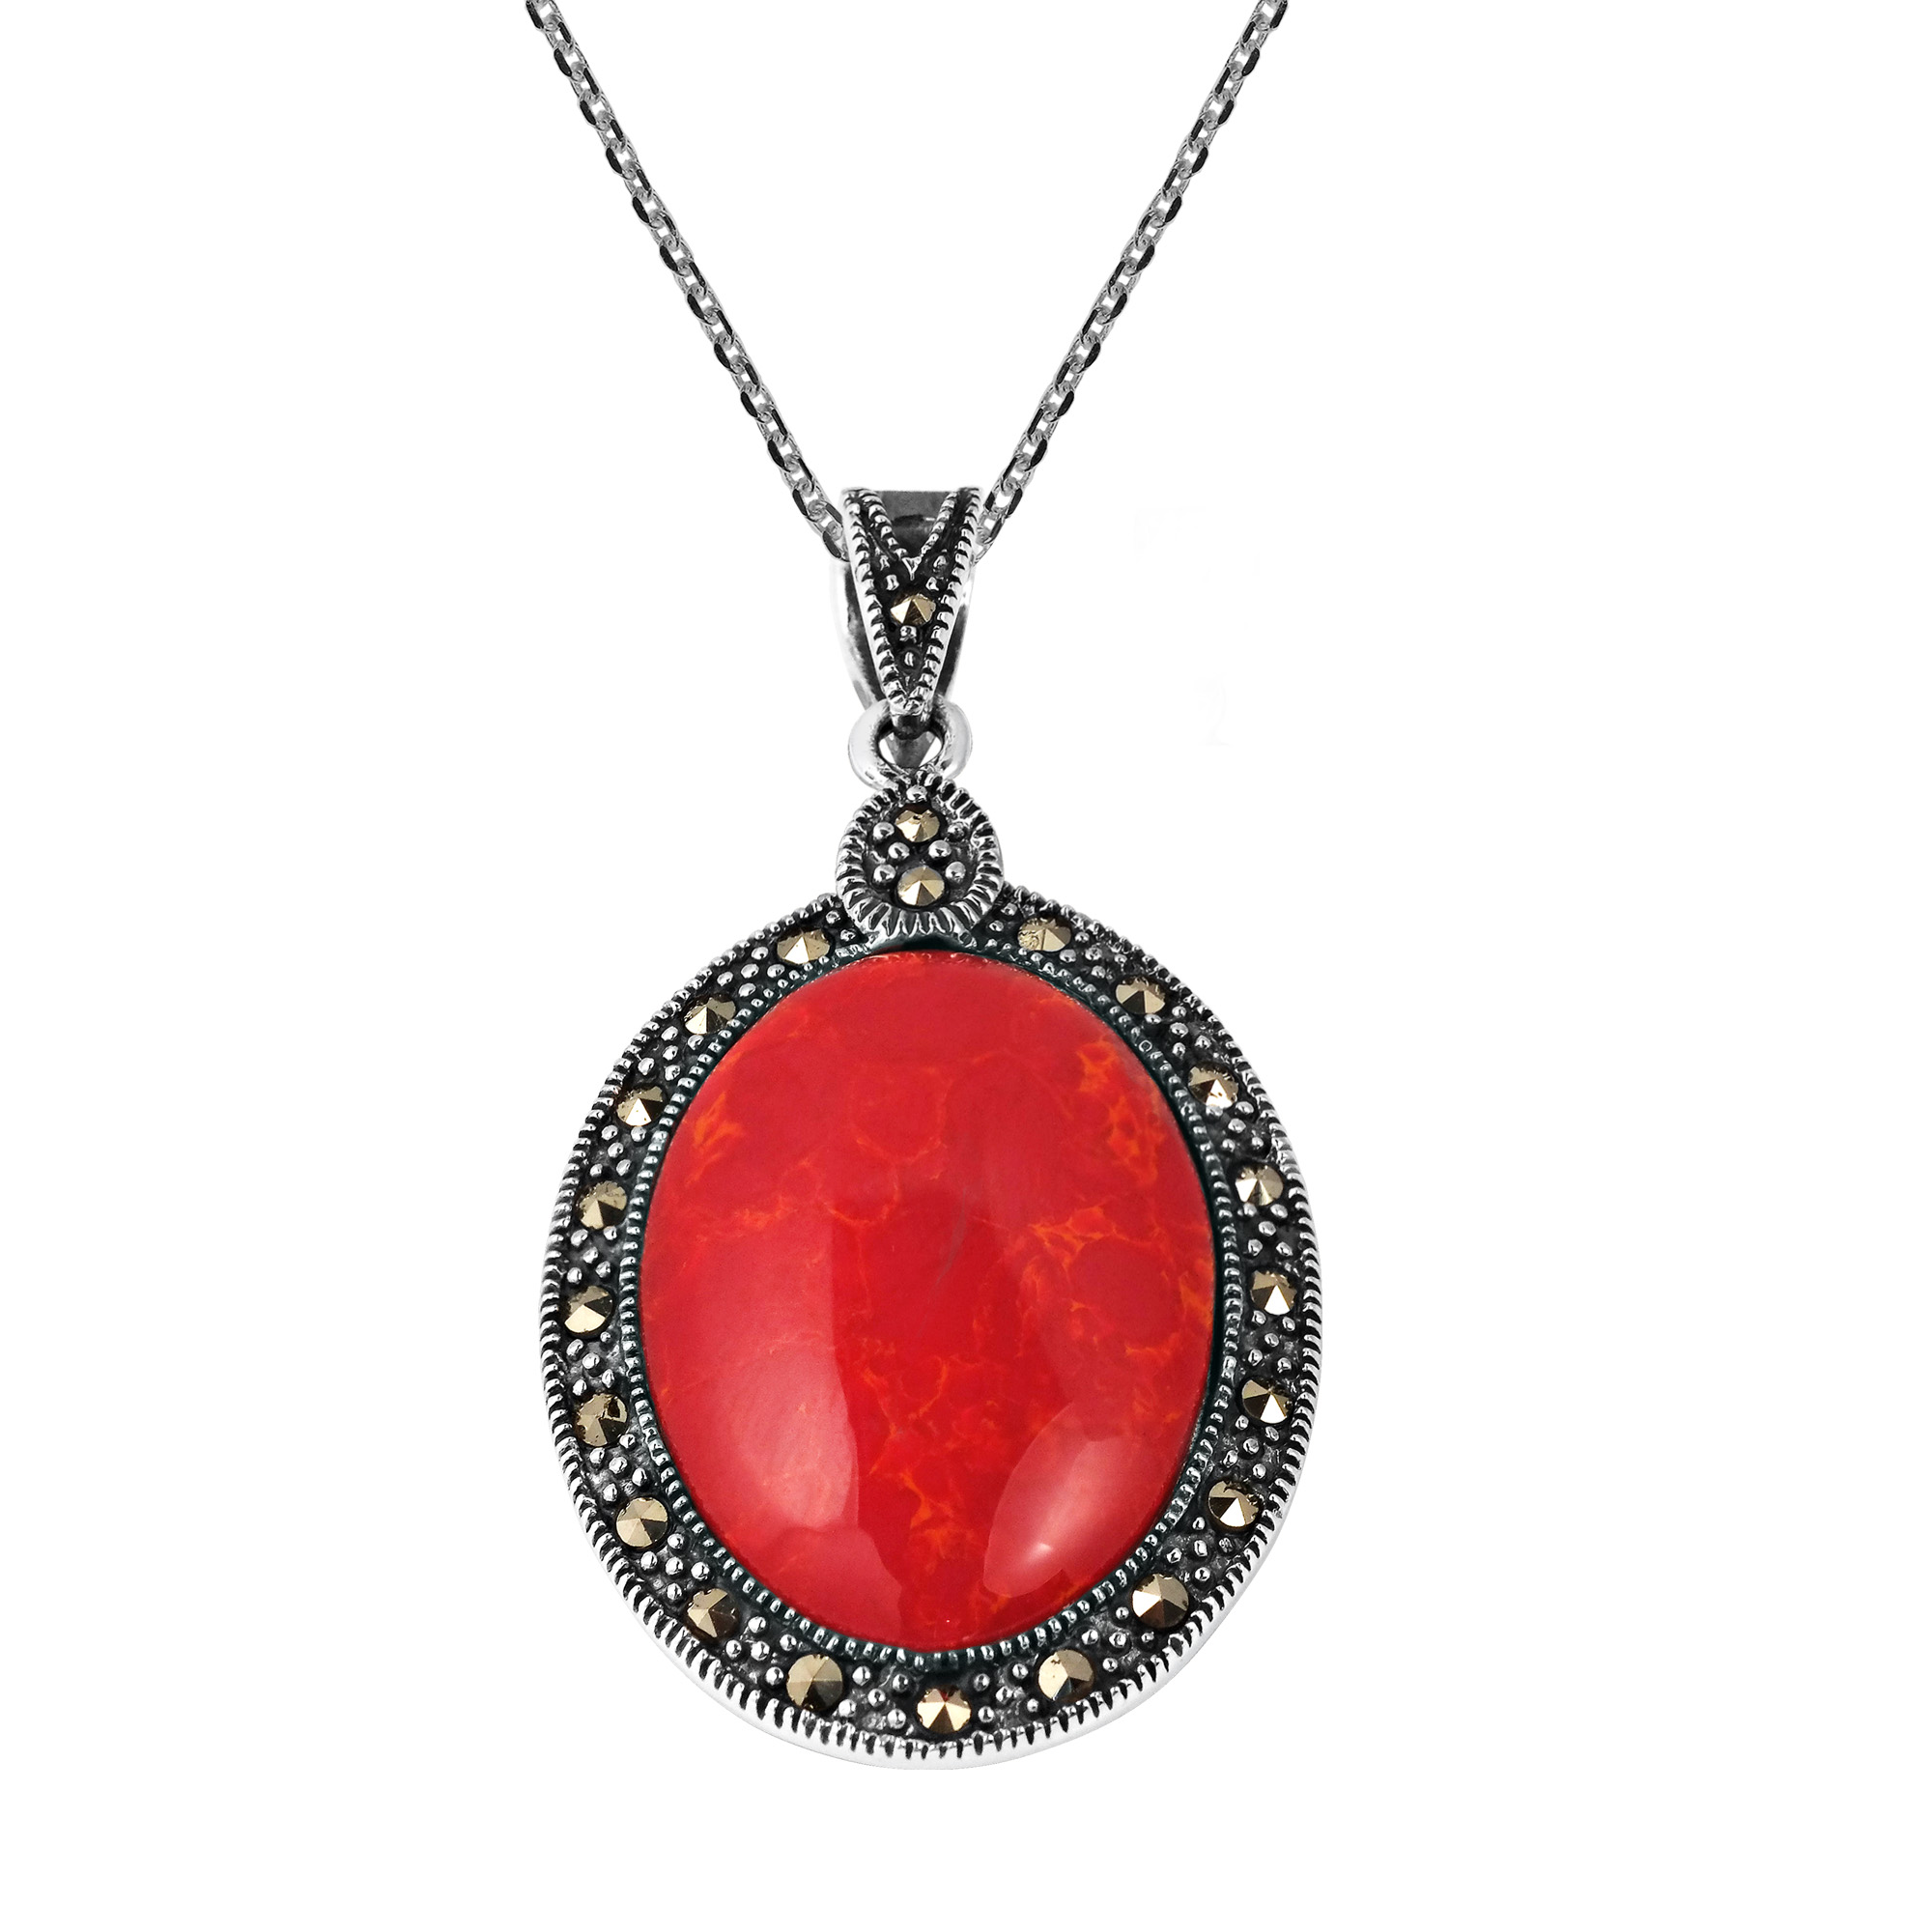 Vintage inspired oval red coral marcasite frame sterling silver the necklace features an oval stone encased with sparkling marcasite crafted in sterling silver the pendant hangs from mozeypictures Images